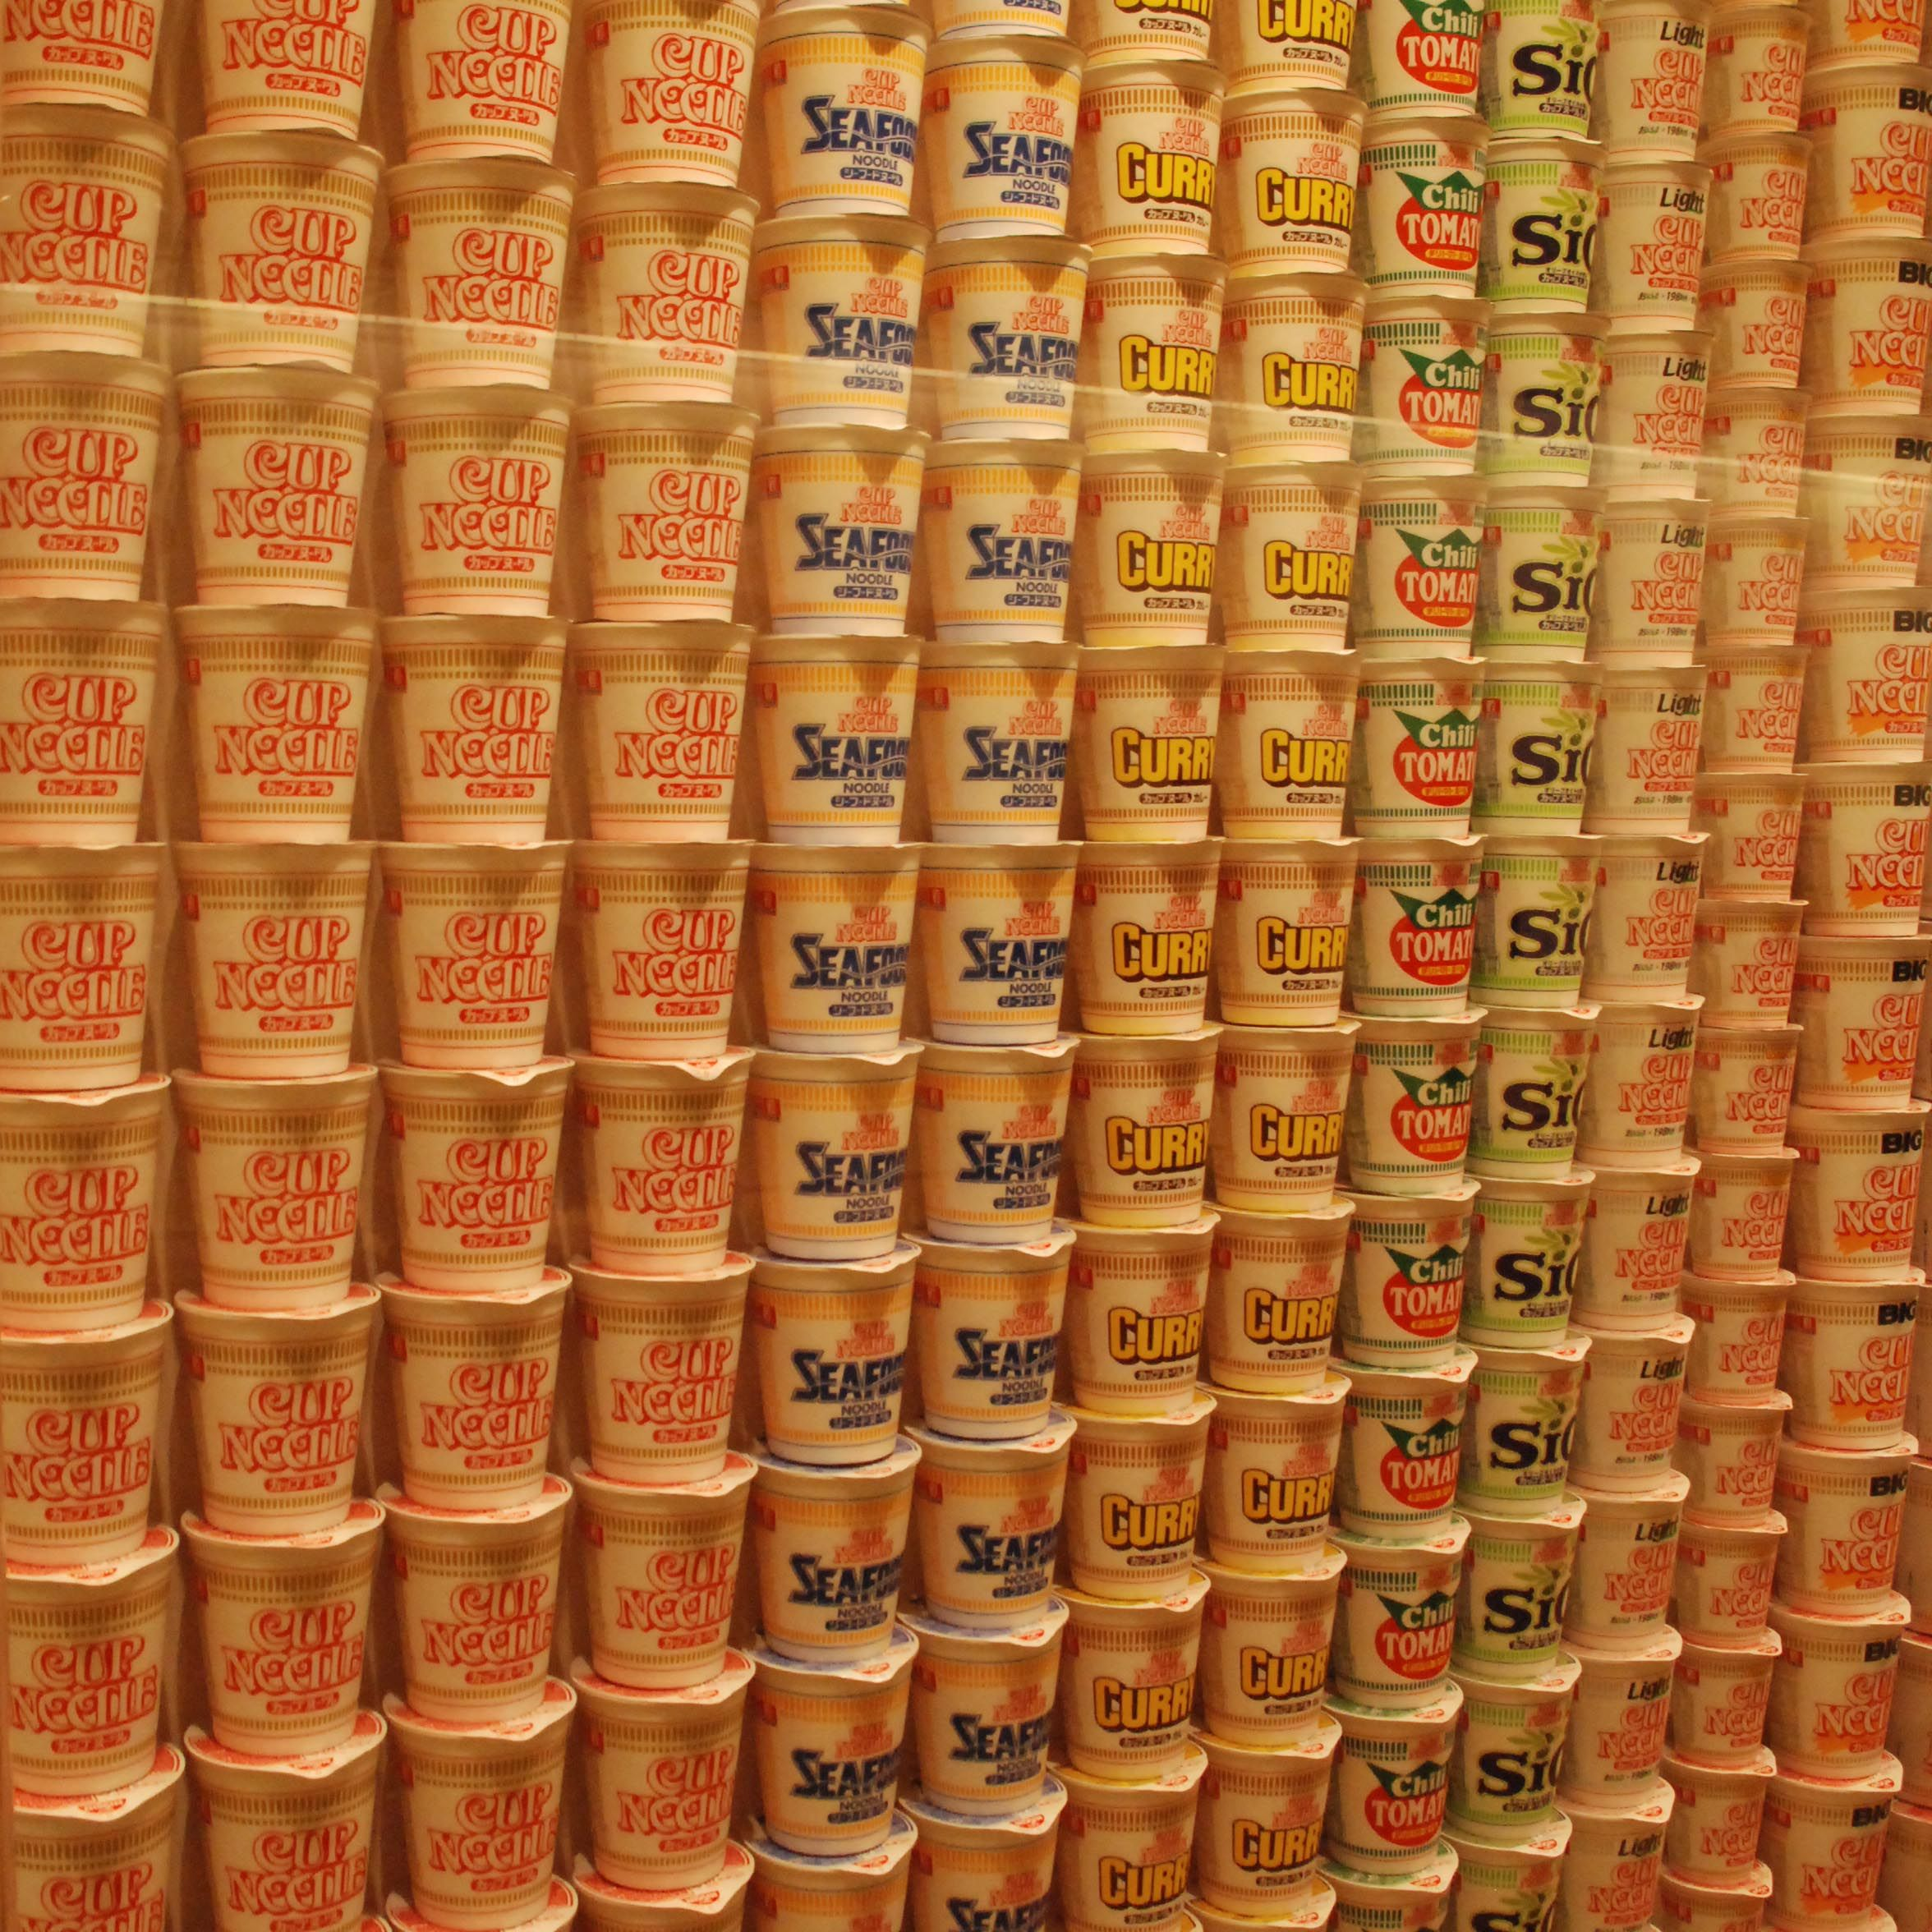 Piles of Noodle Cups